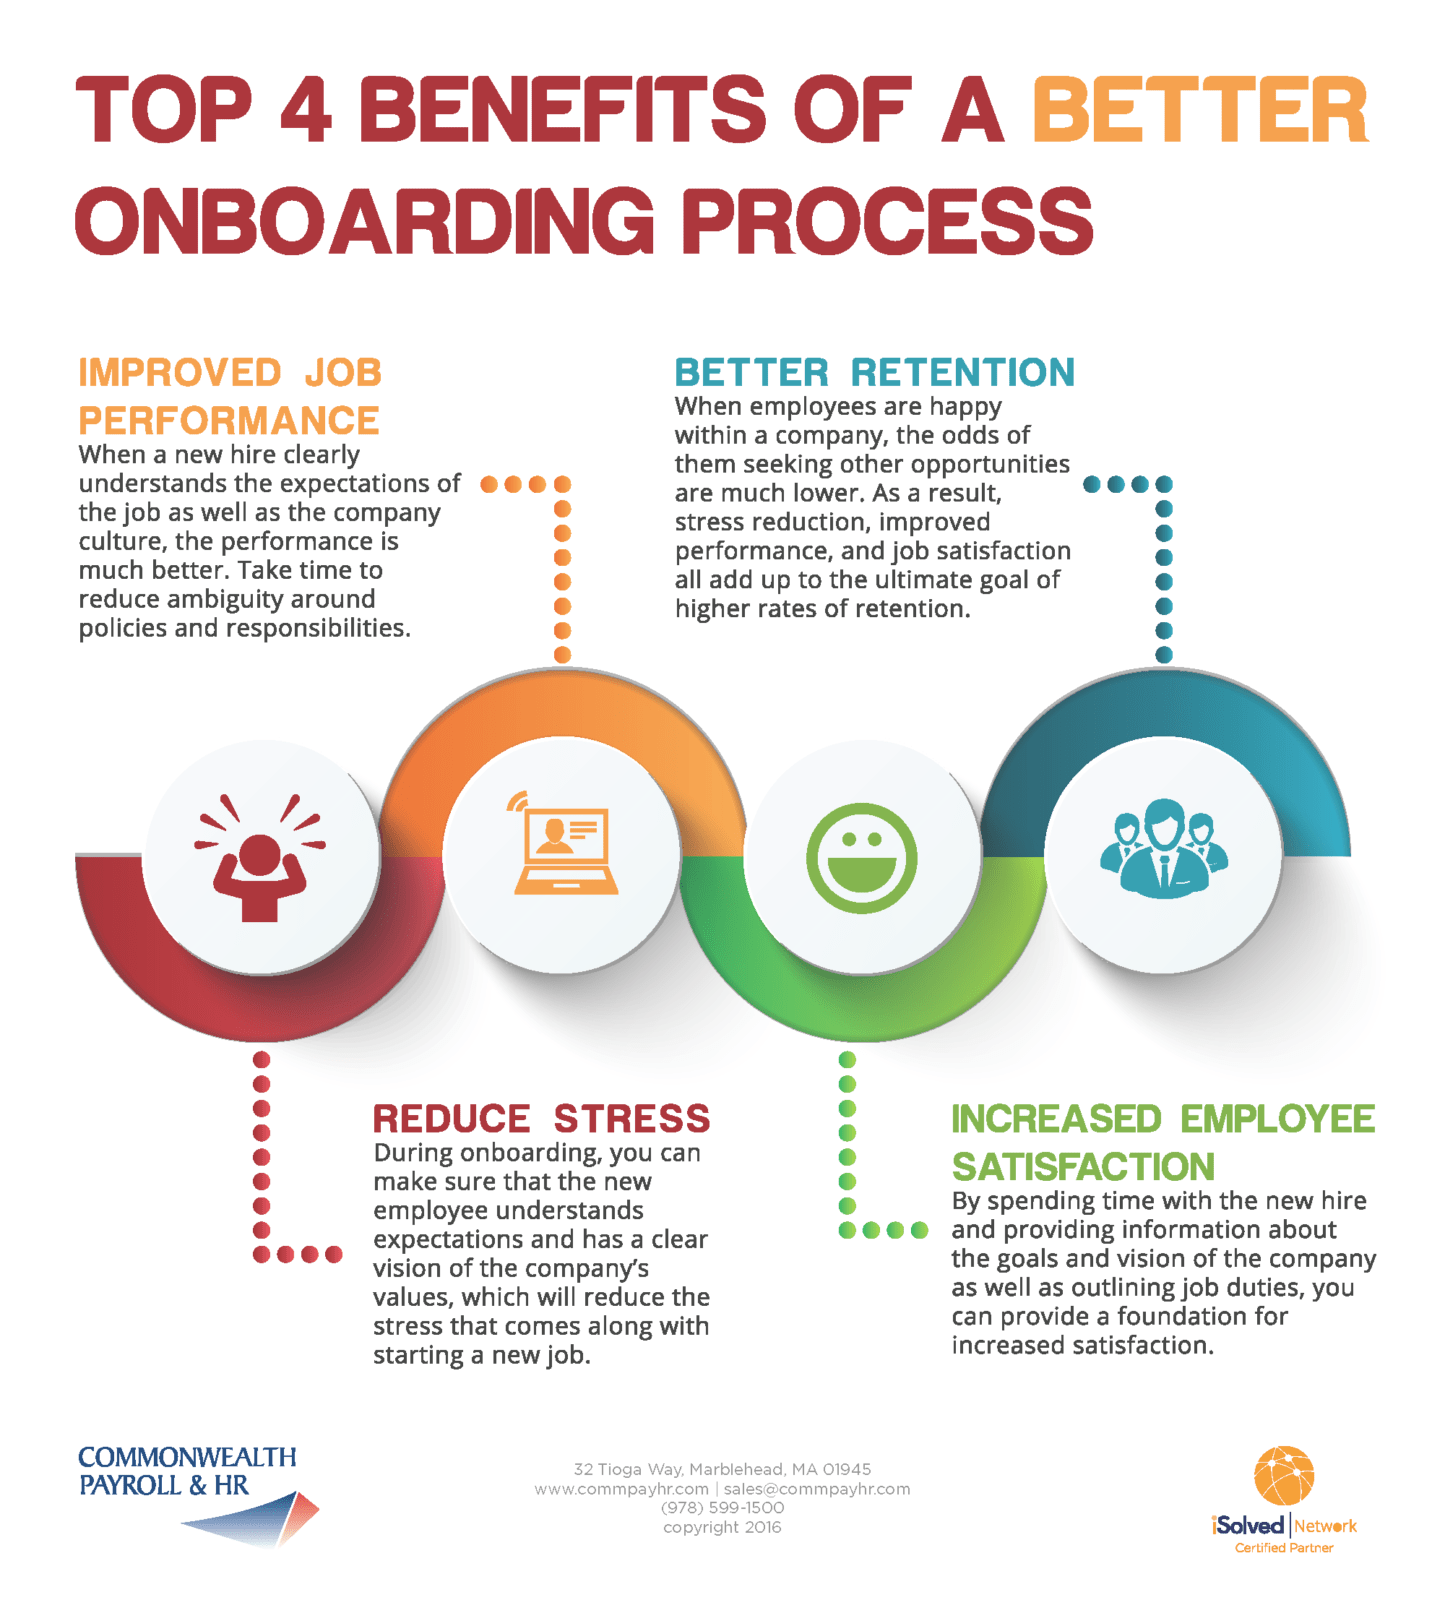 Benefits of better onboarding | Commonwealth Payroll & HR